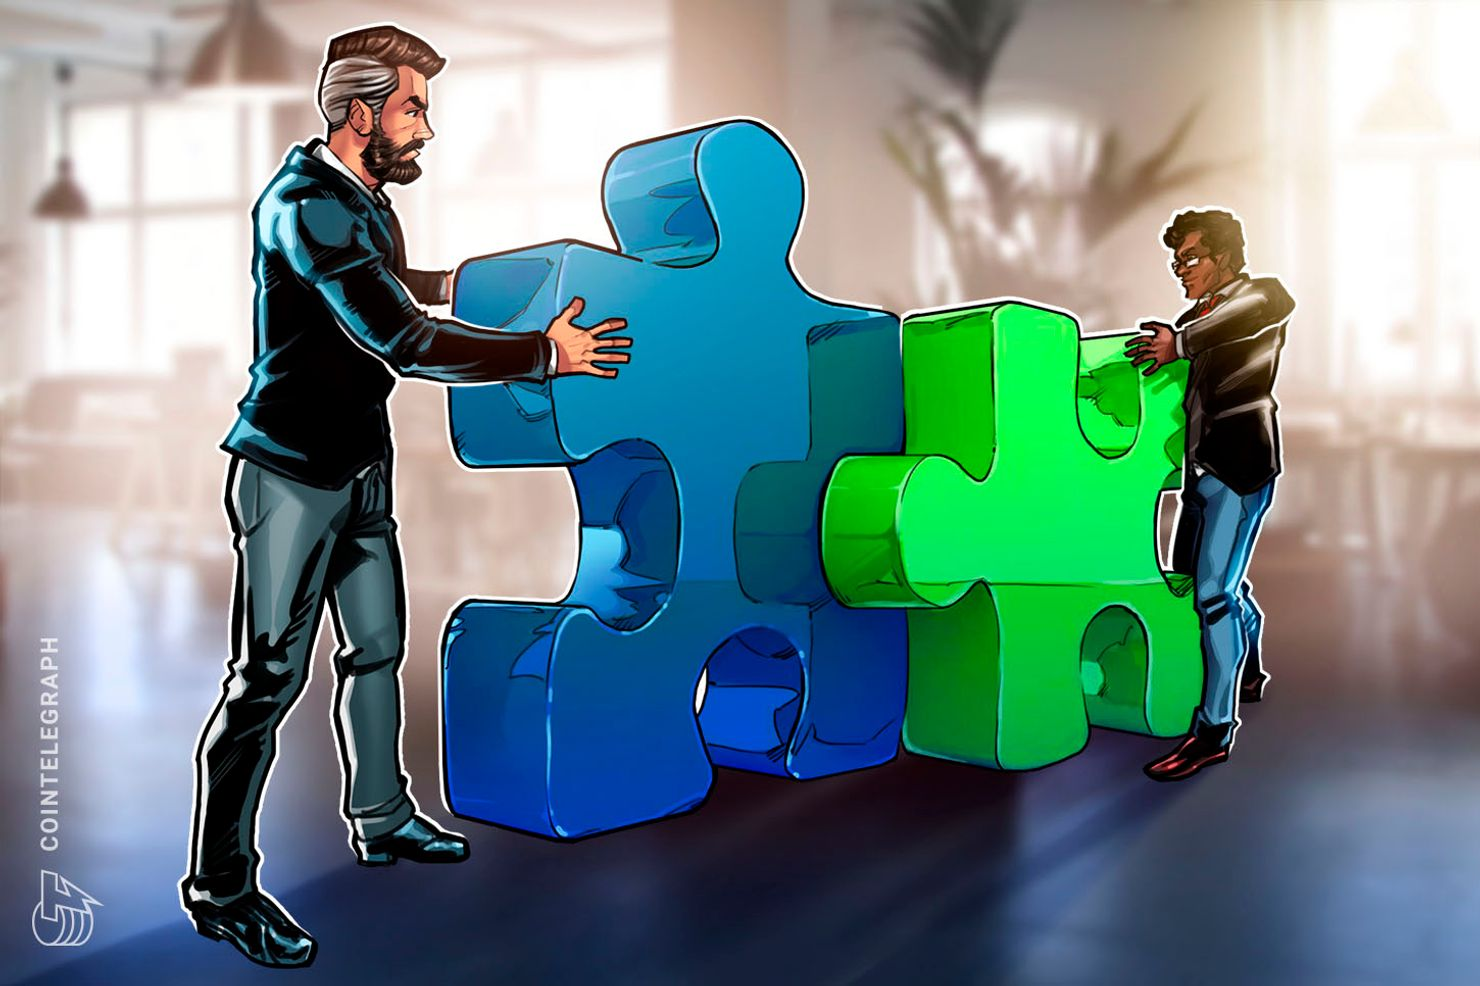 Genesis Partners With Blockchain Security Firm to Provide Direct Custody Operations